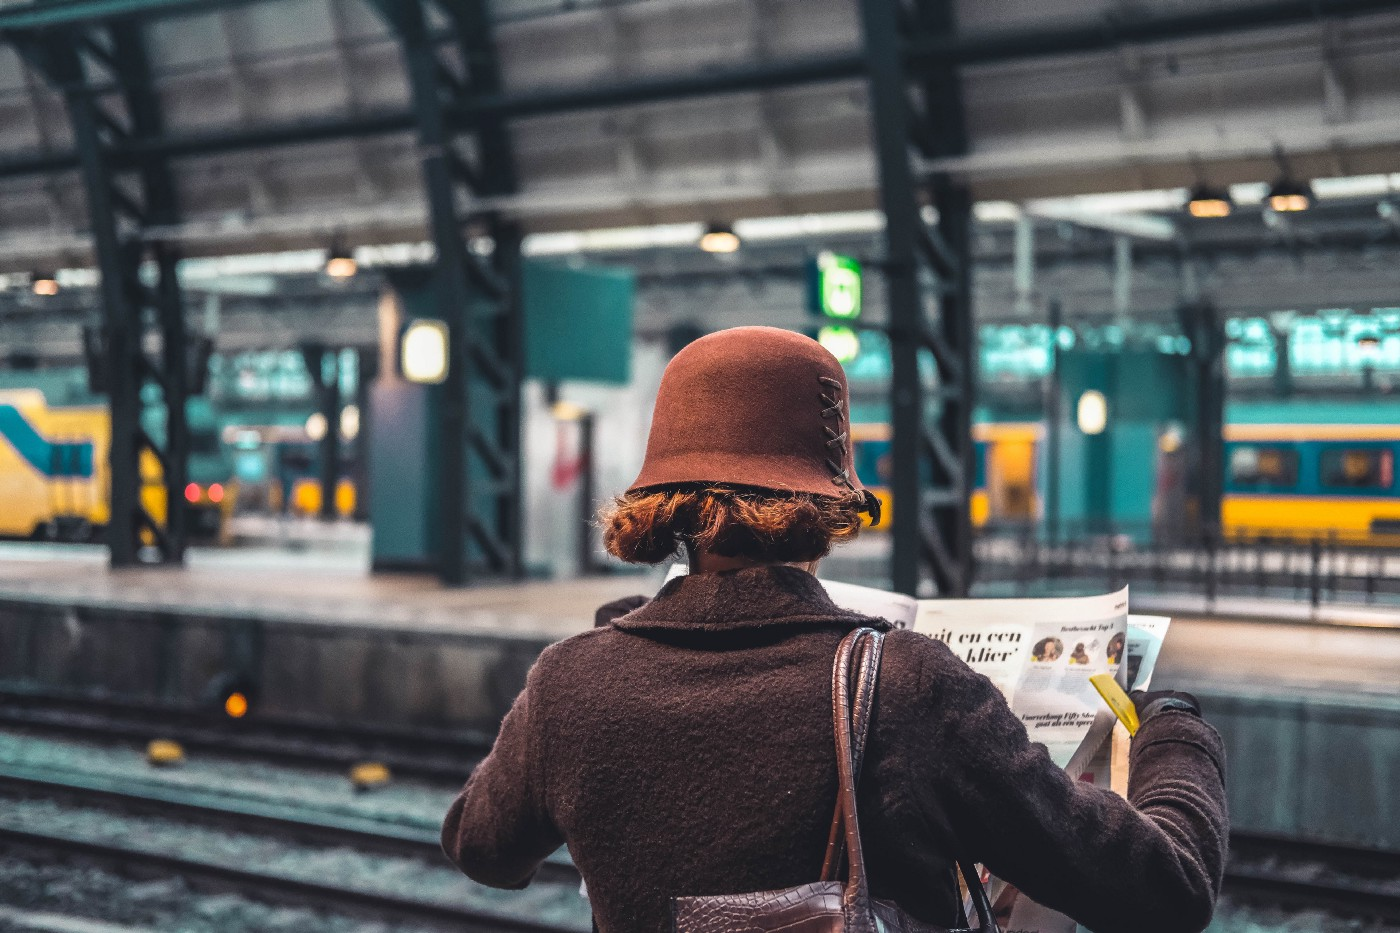 Woman reading newspaper waiting for train to arrive.